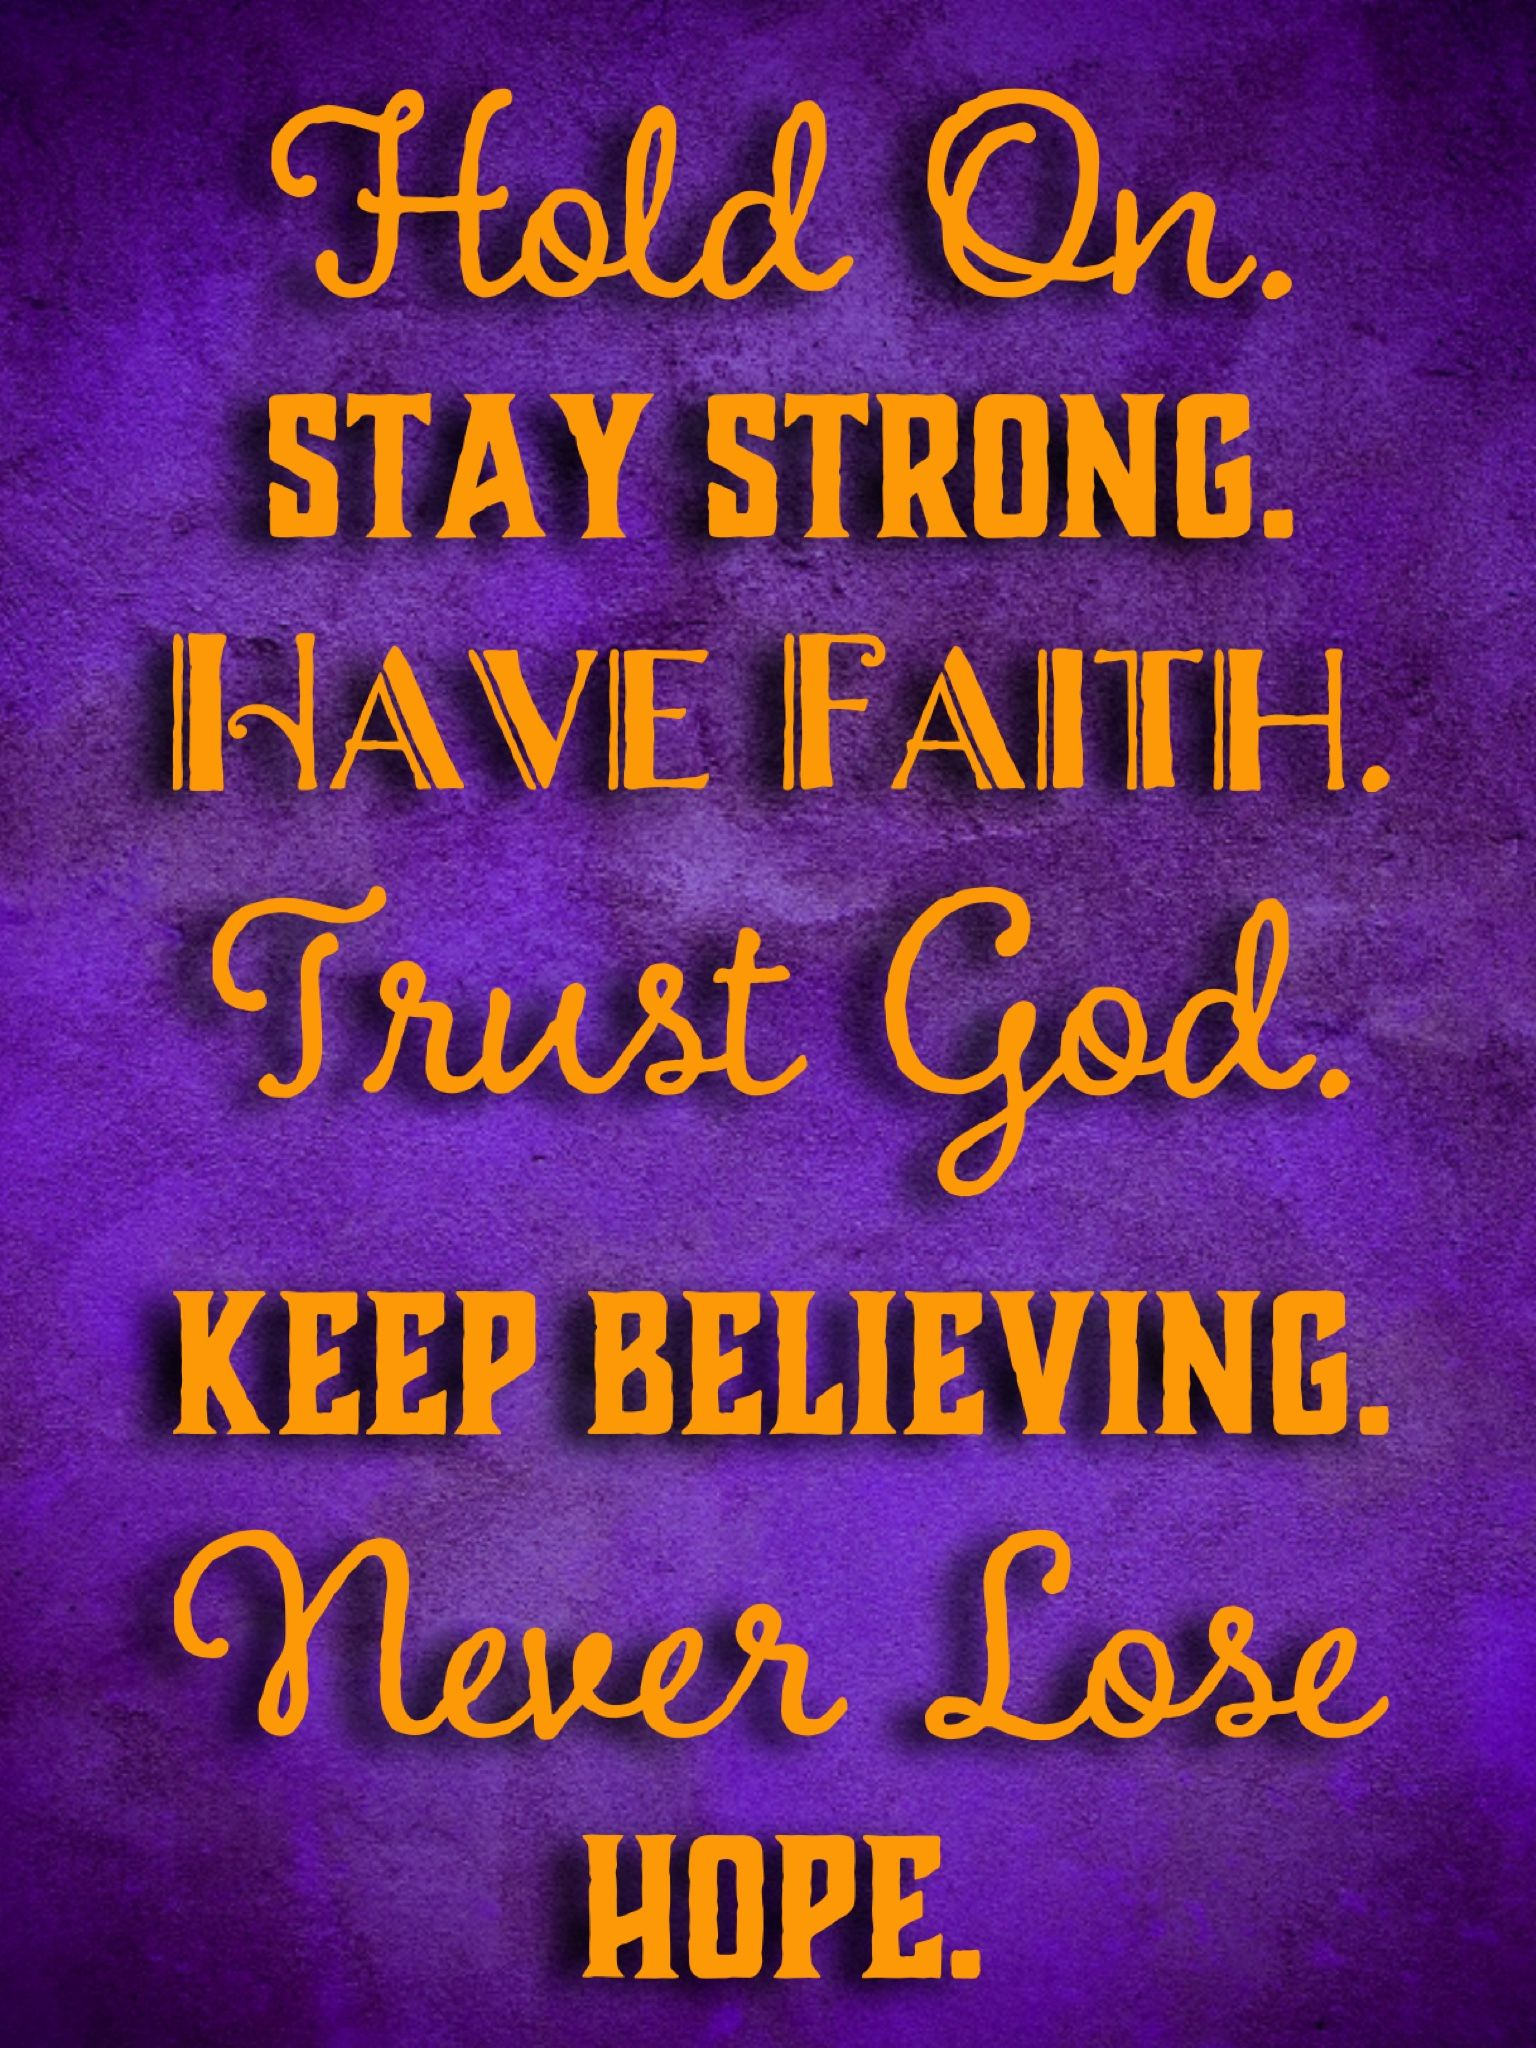 Hold On. Stay Strong. Have Faith. Trust God. Keep Believing. Never Lose  Hope. | Trust god, Fire quotes, Quotes about god